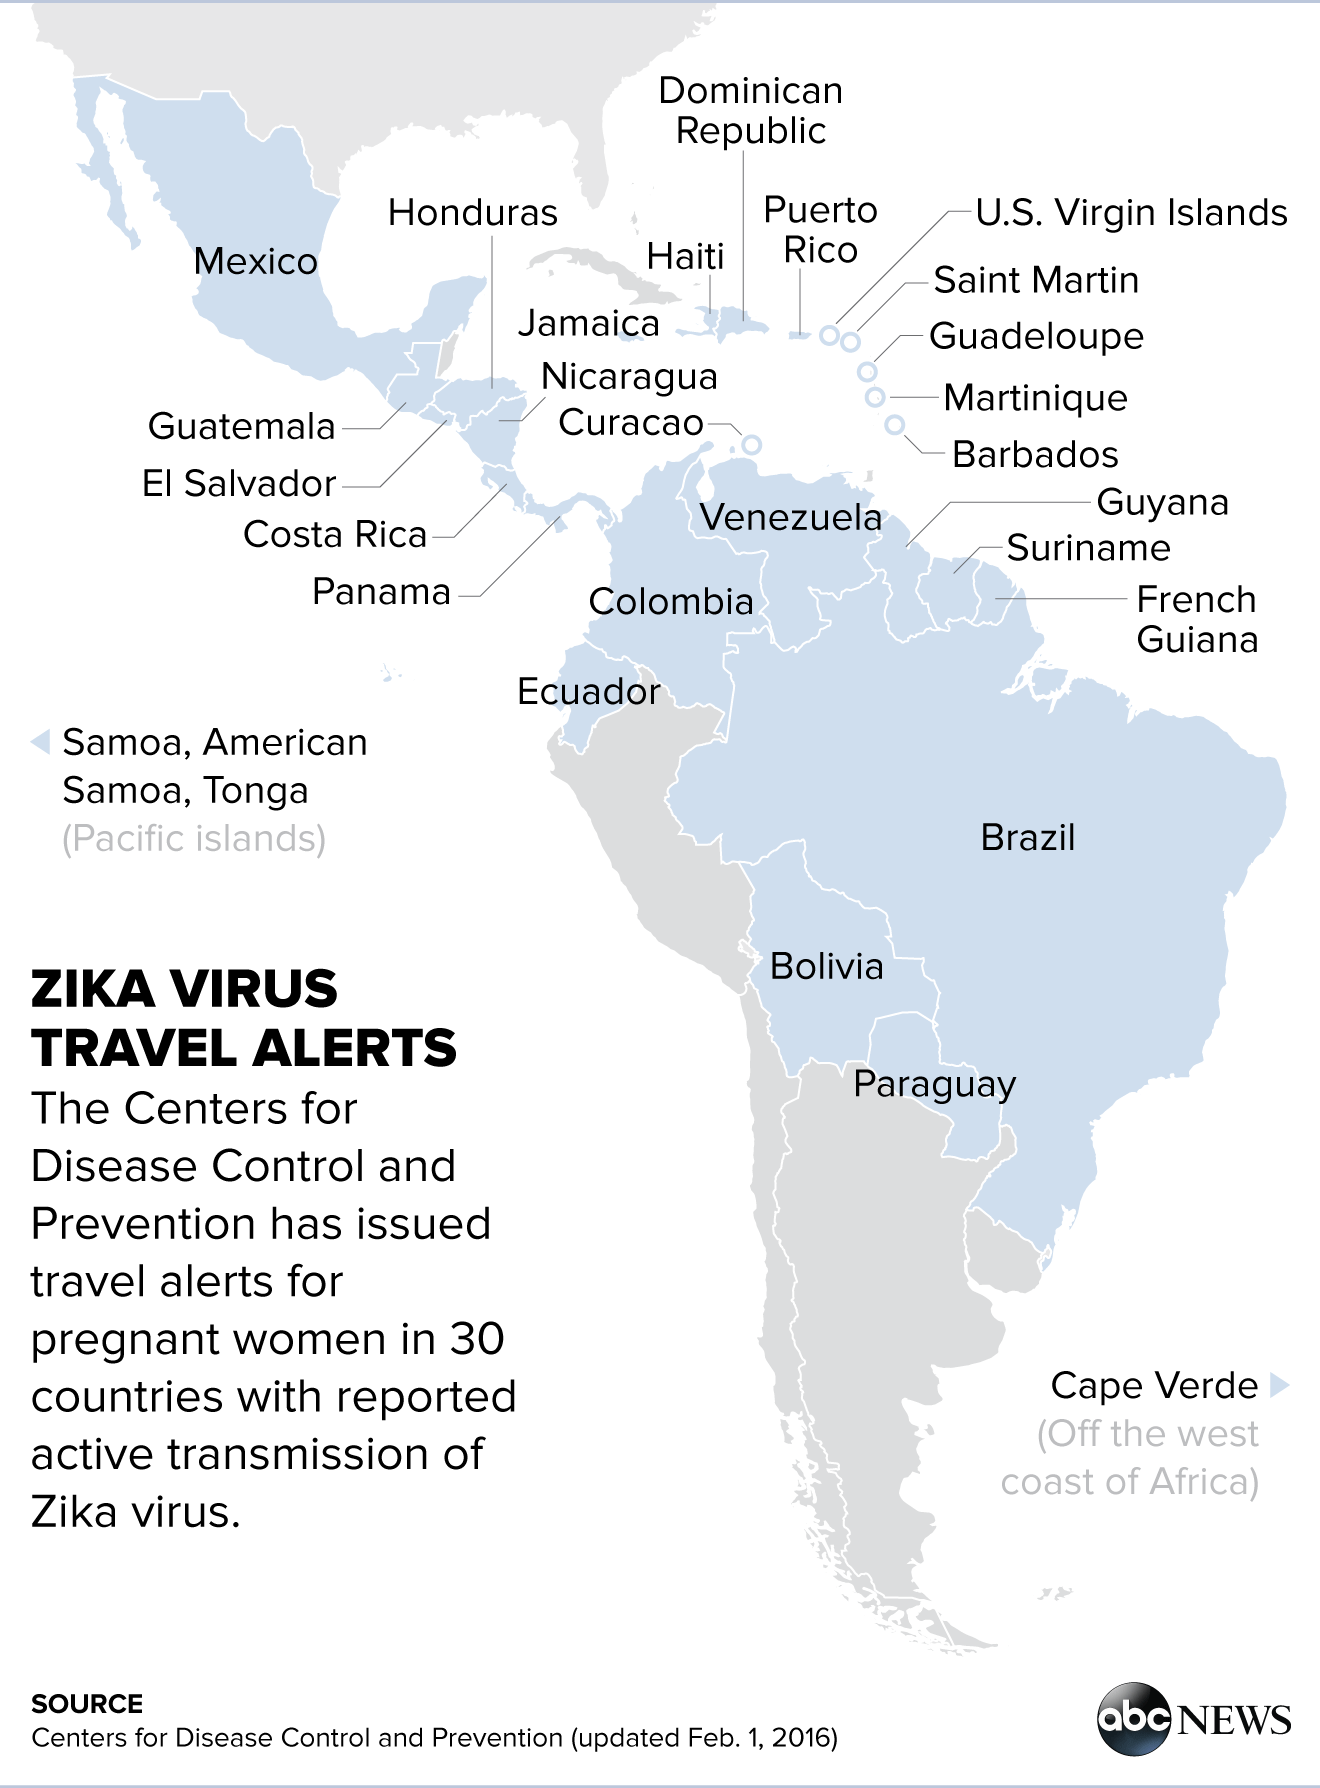 Zika World Map Jamaica on world map prague, world map bolivia, world map mexico, world map honduras, world map puerto rico, world map brazil, world map nicaragua, world map taiwan, world map costa rica, world map haiti, world map indonesia, world map caracas, world map peru, world map belize, world map maldives, world map congo, world map netherlands, world map trinidad, world map pakistan, world map sri lanka,